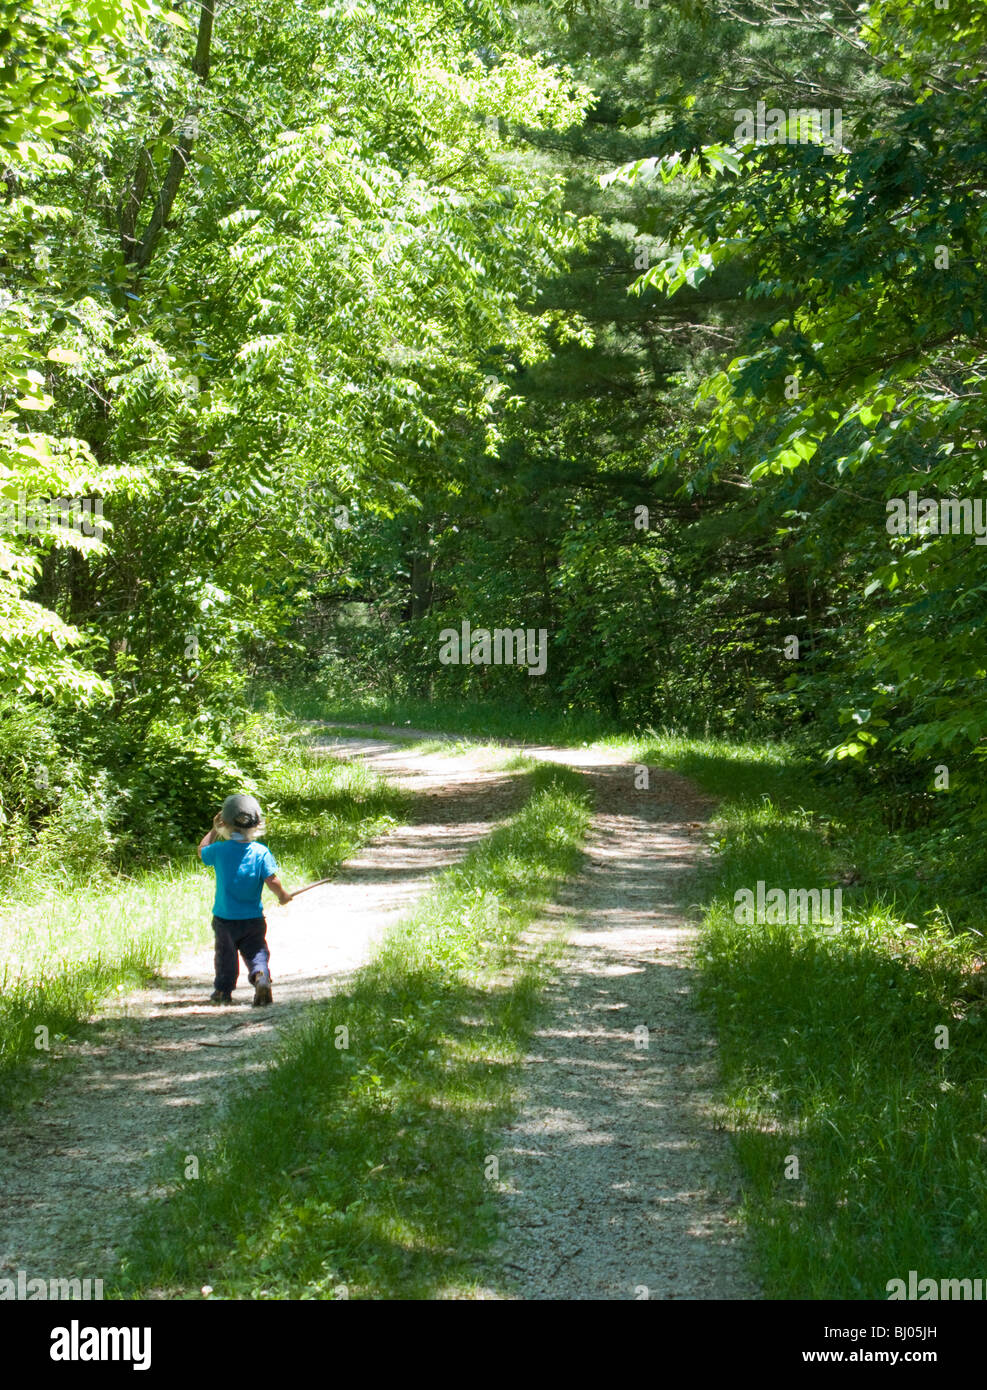 Young boy walking down a gravel road holding a stick. - Stock Image